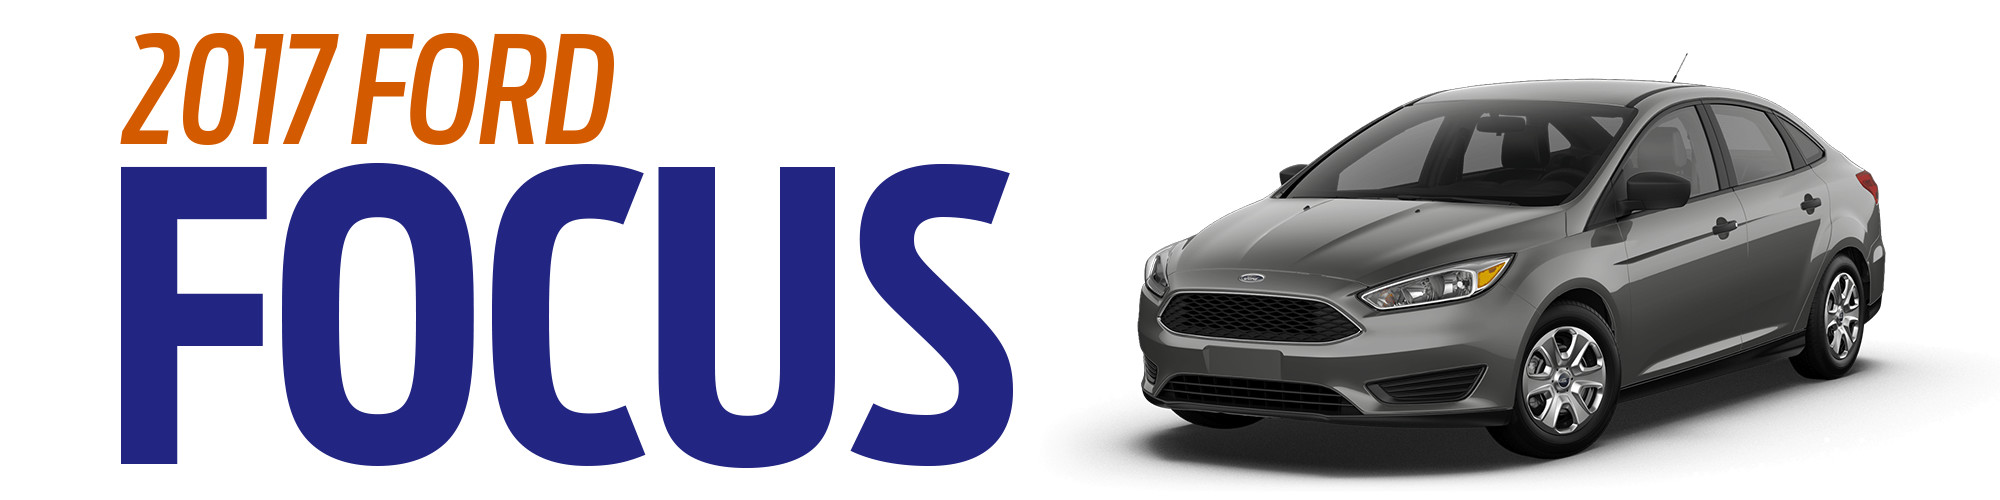 2017 Ford Focus in Lewes